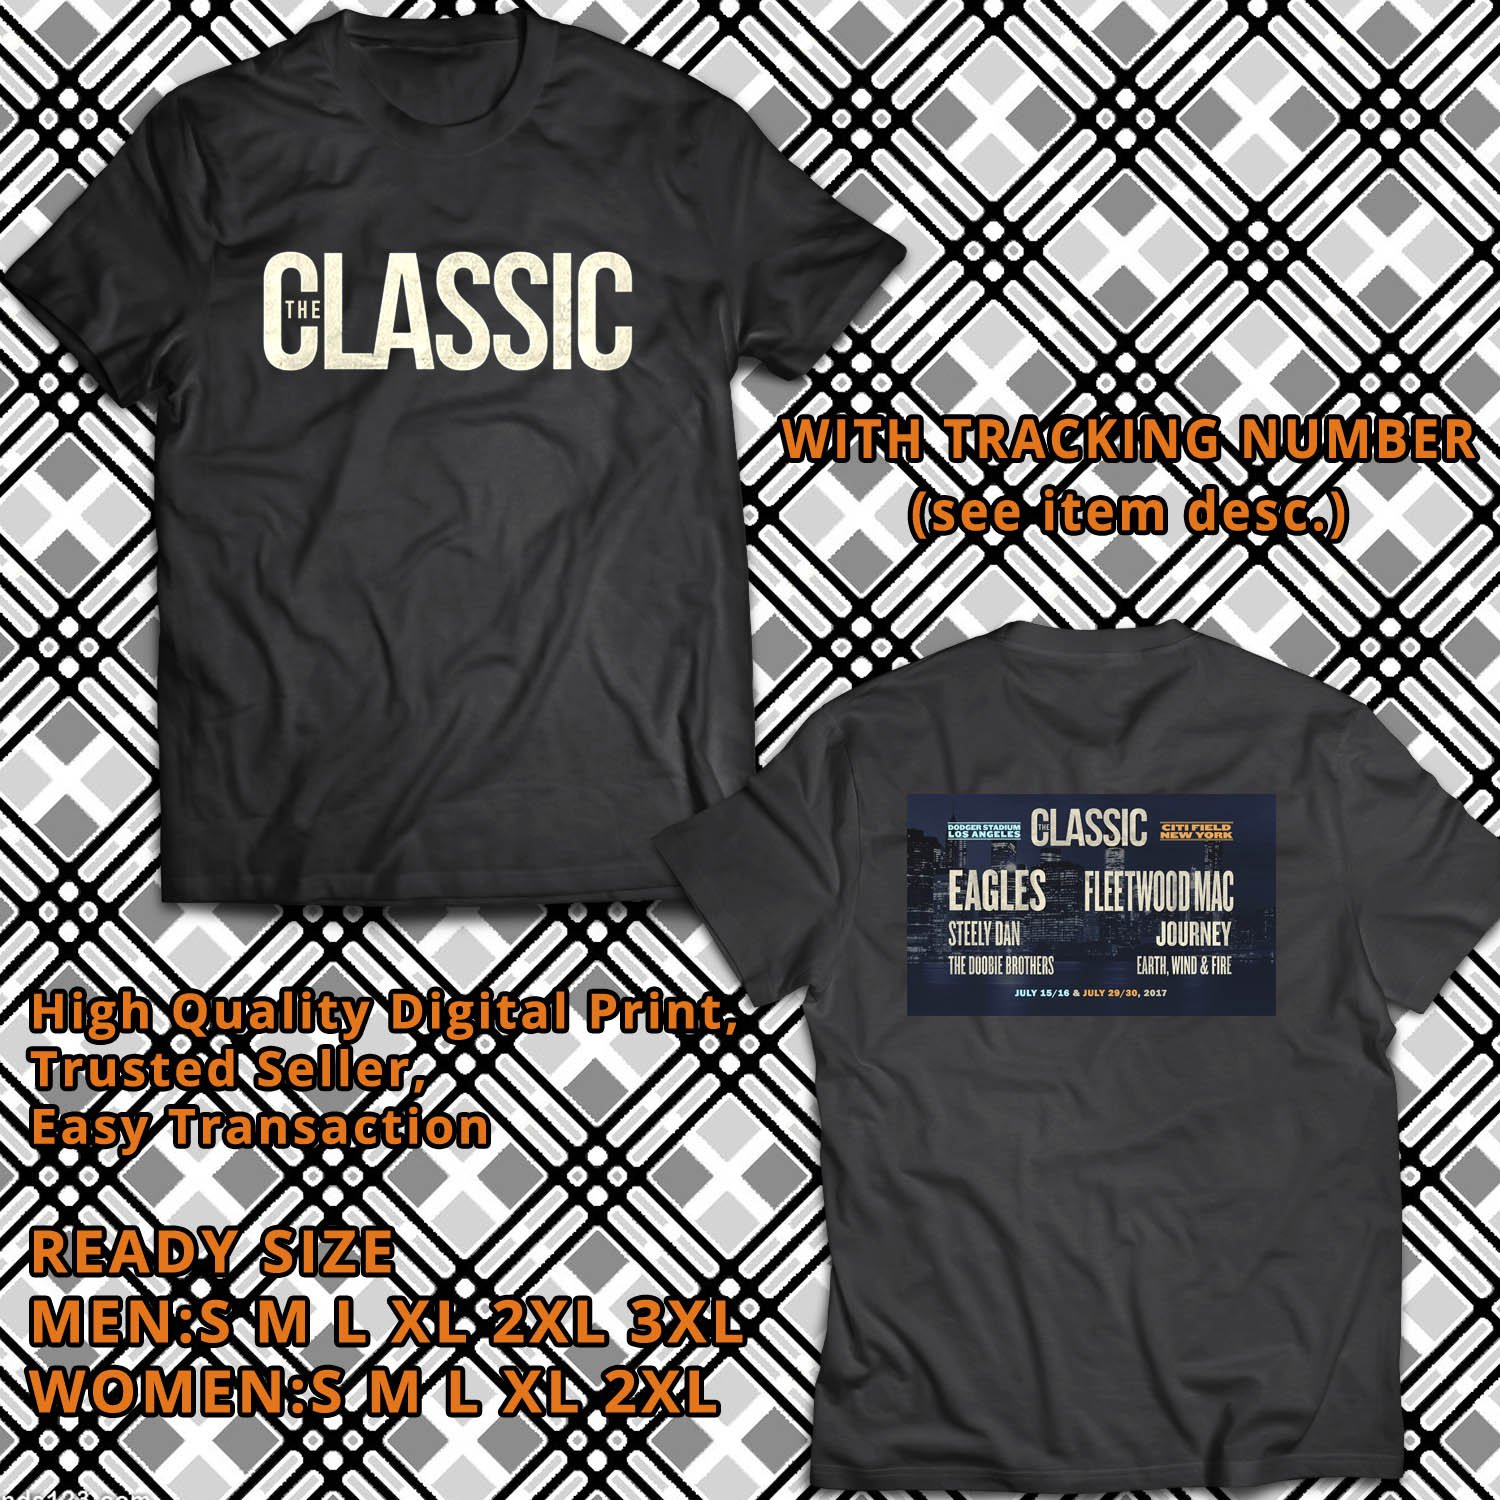 HITS THE CLASSIC EAST AND WEST JULY 2017 BLACK TEE'S 2SIDE MAN WOMEN ASTR